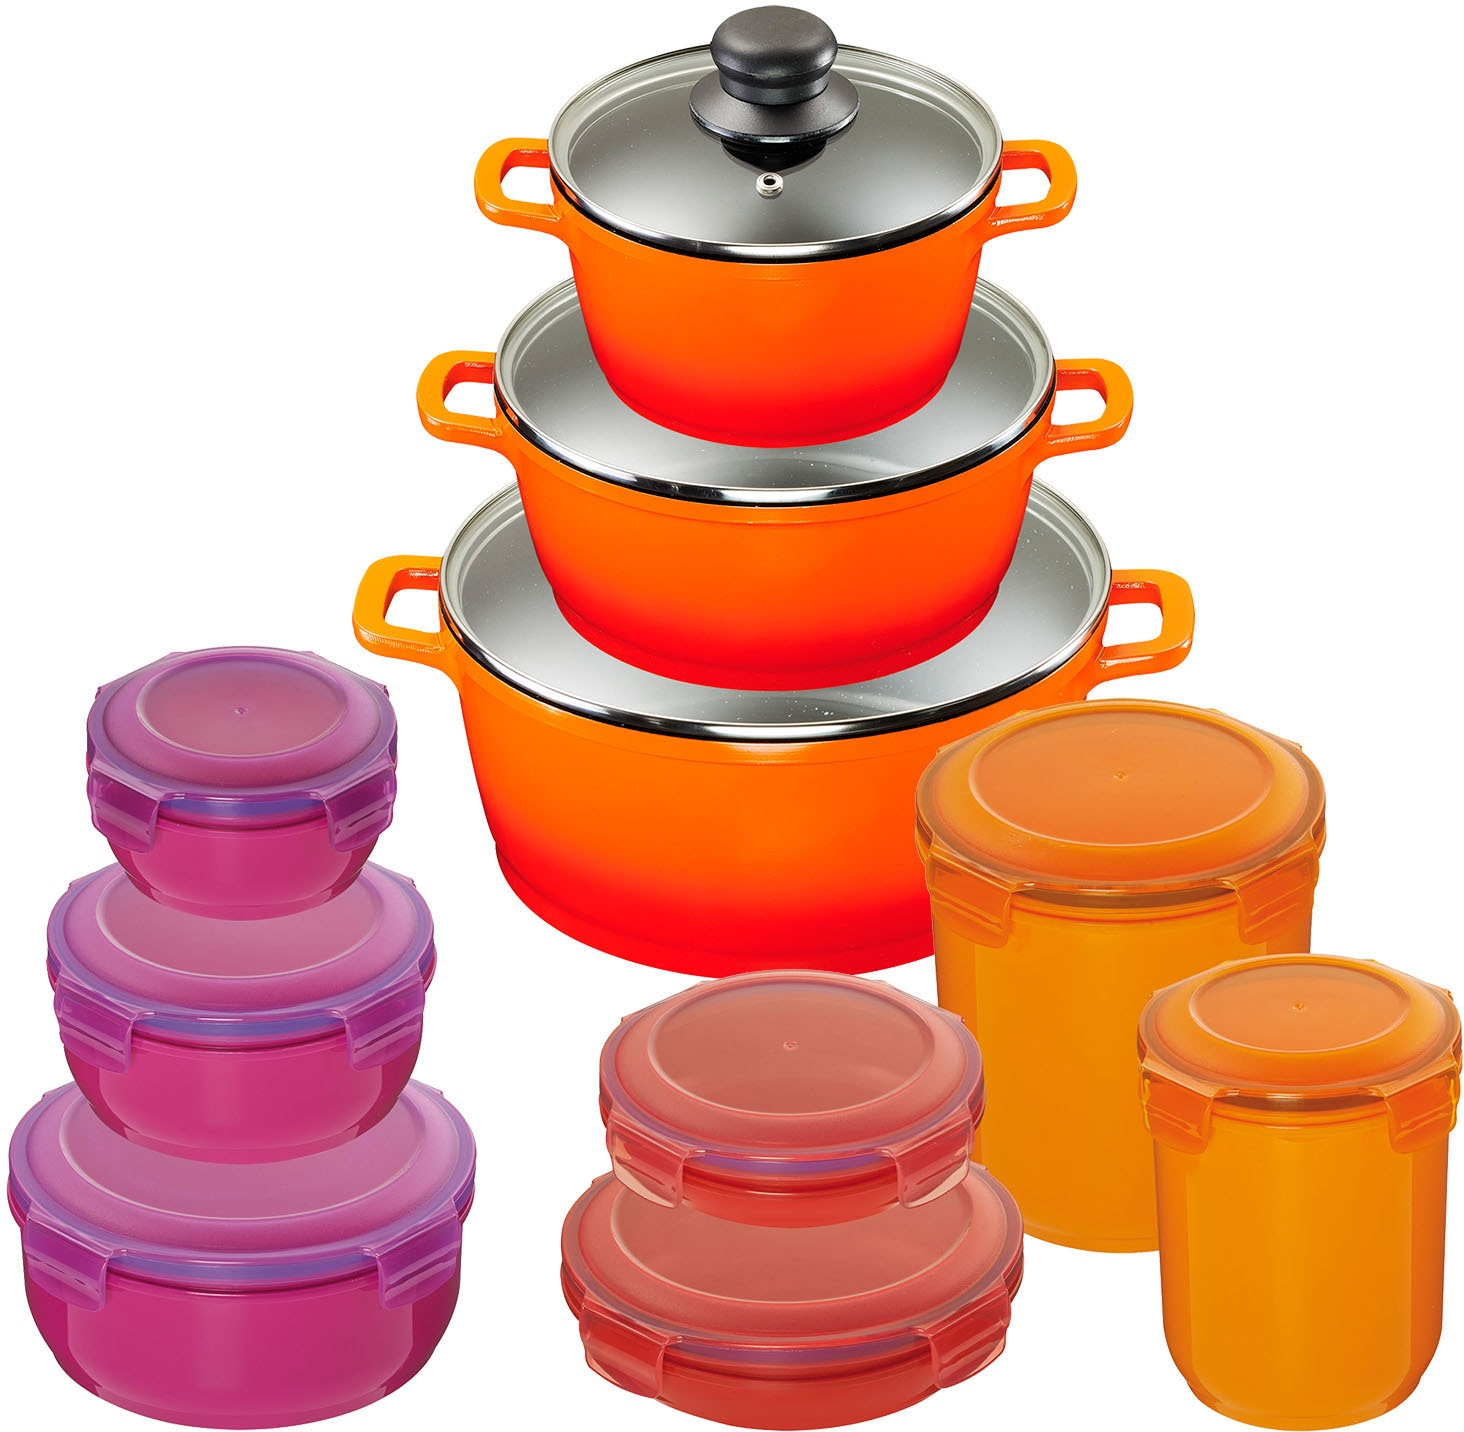 KING Topf-Set Shine Orange, Aluminiumguss, (Set, 10 tlg., 3 Töpfe, Deckel, 7 Dosen), Induktion orange Topfsets Töpfe Haushaltswaren